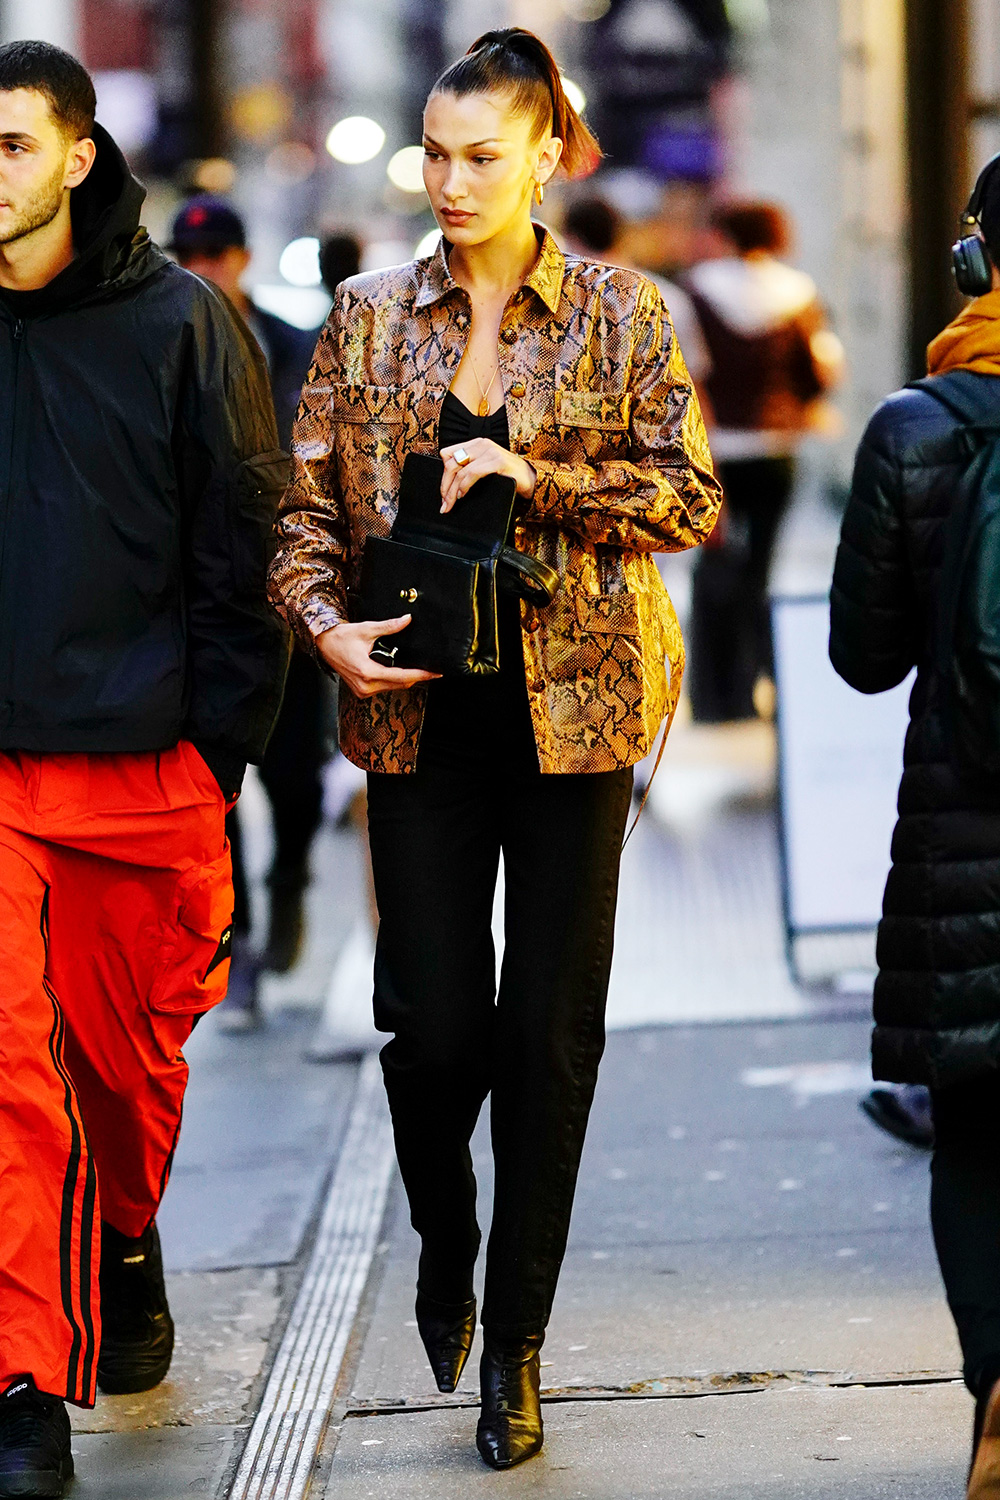 Bella Hadid out and about wearing a snakeskin jacket in New York